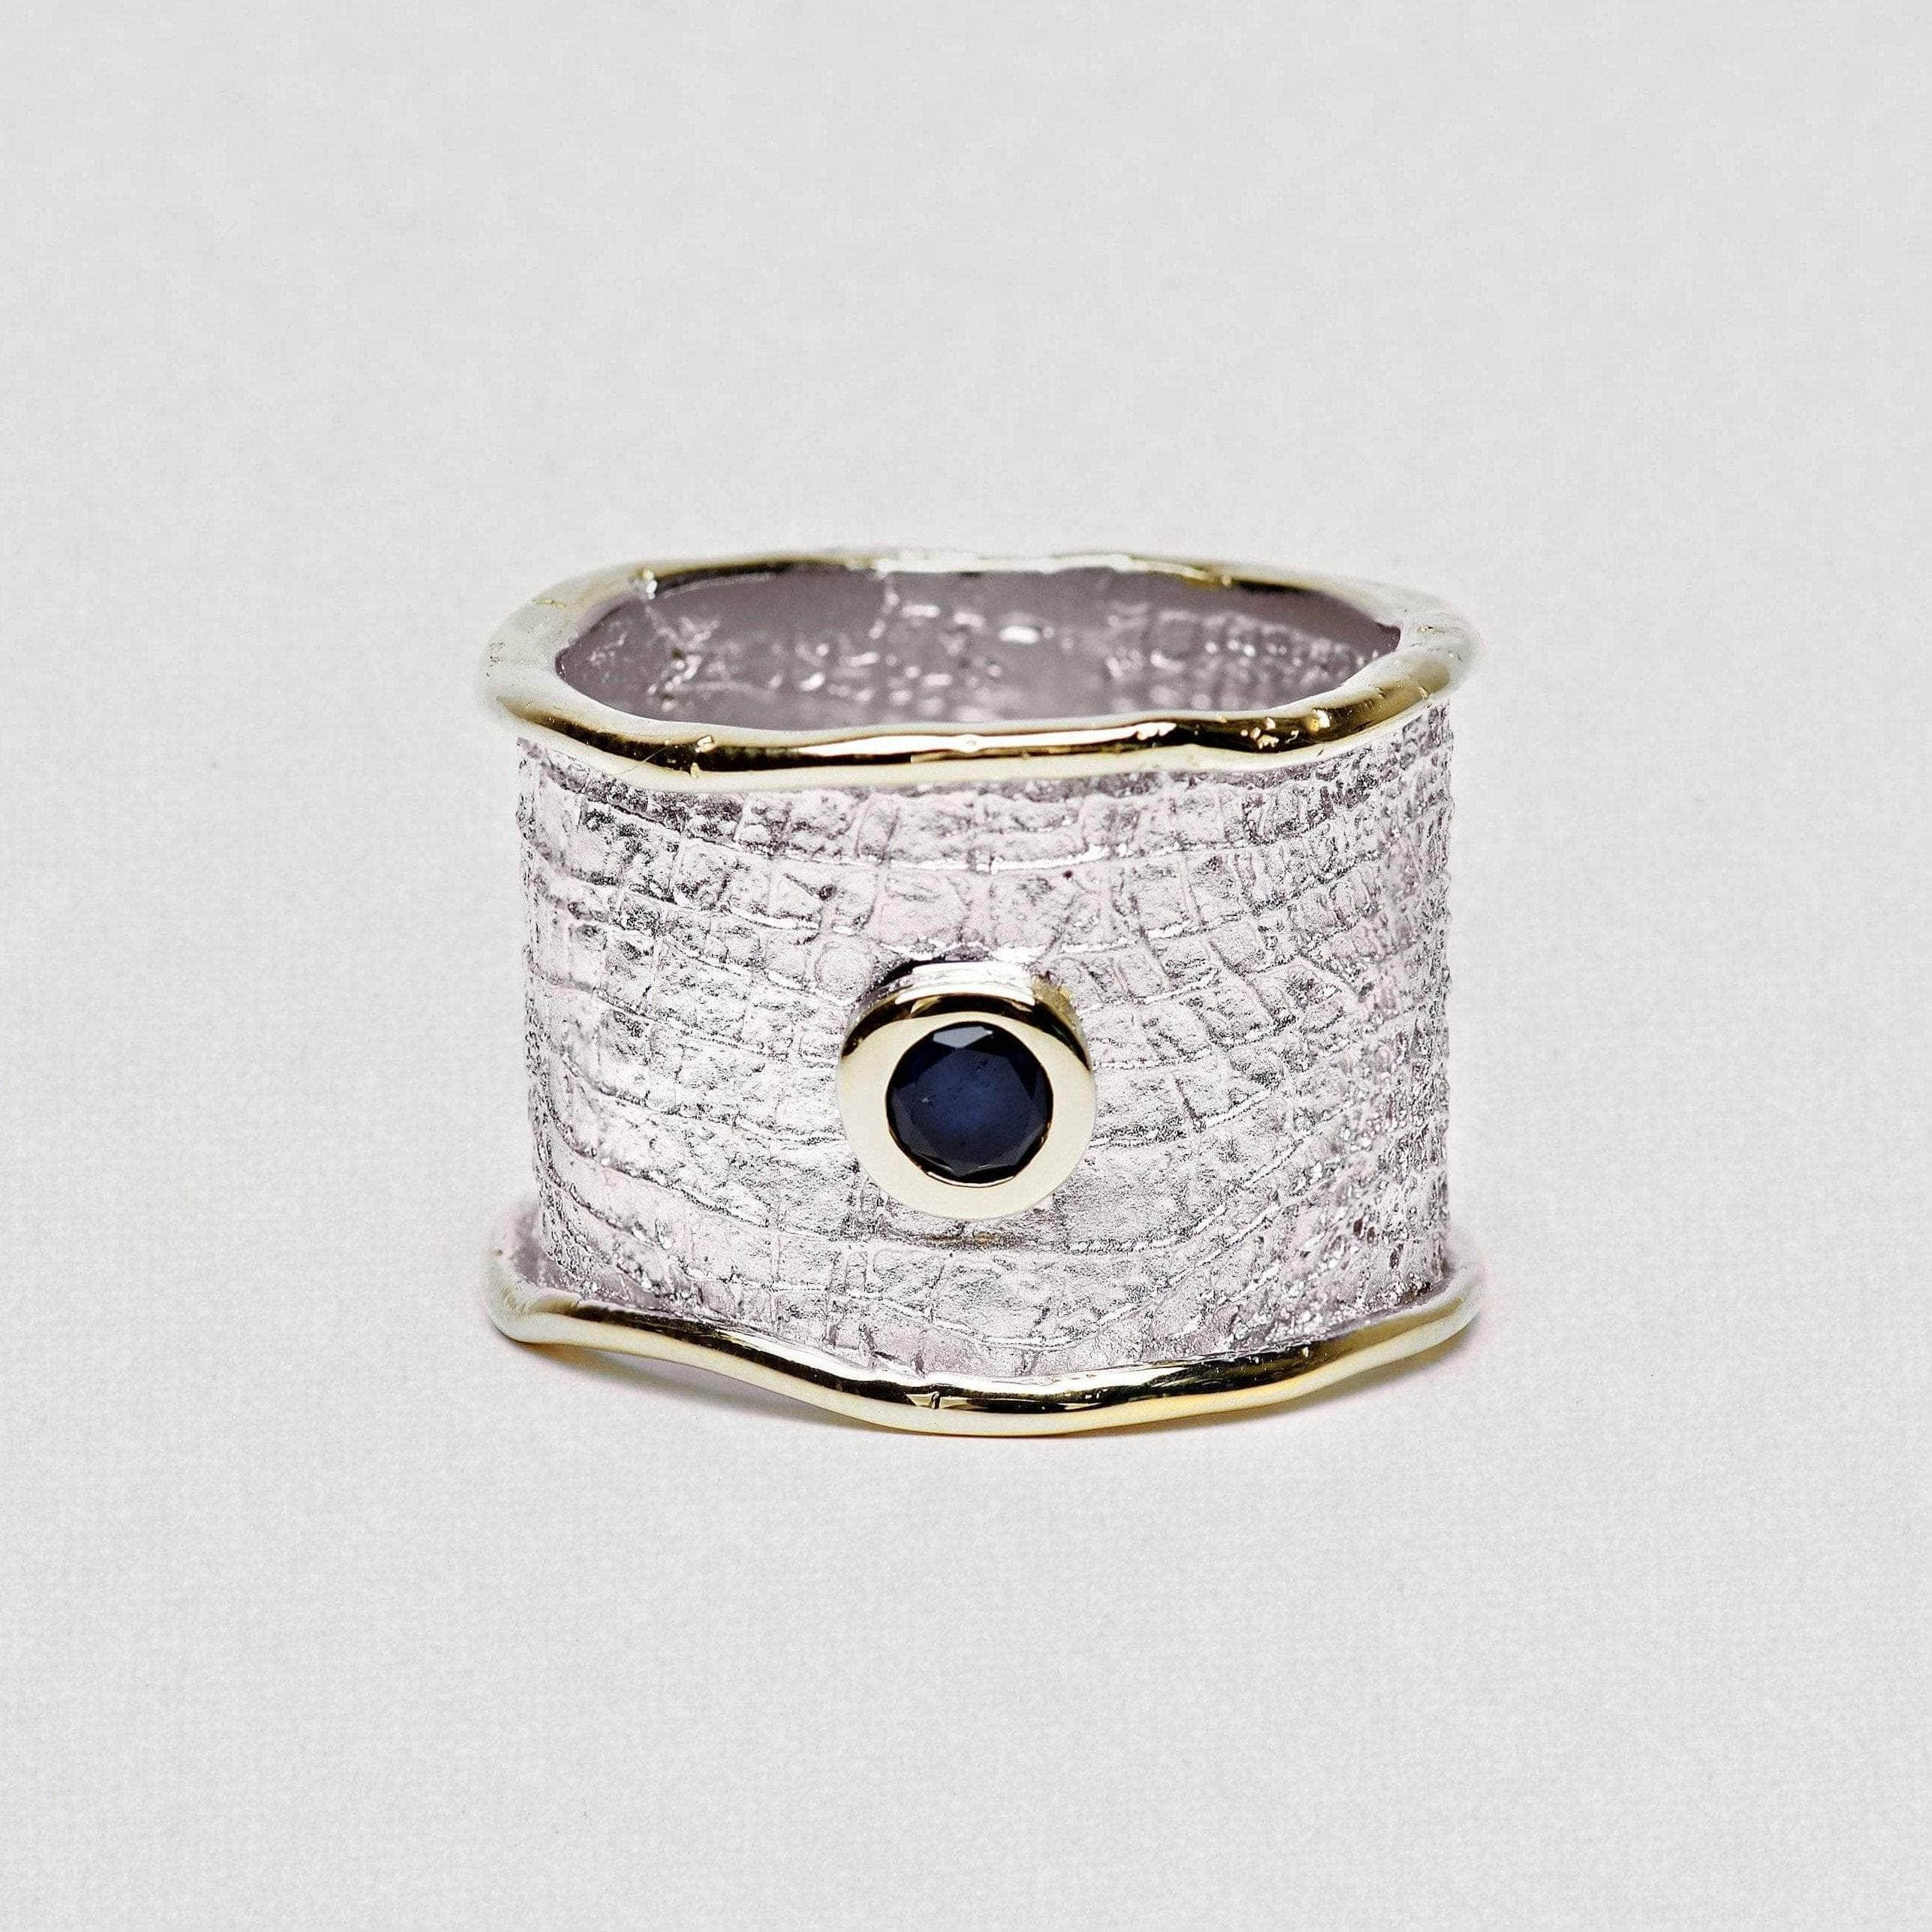 Nedrila Ring, Gold, Rhodium, Sapphire, Serial, silver, spo-disabled, StoneColor:DeepBlue Ring